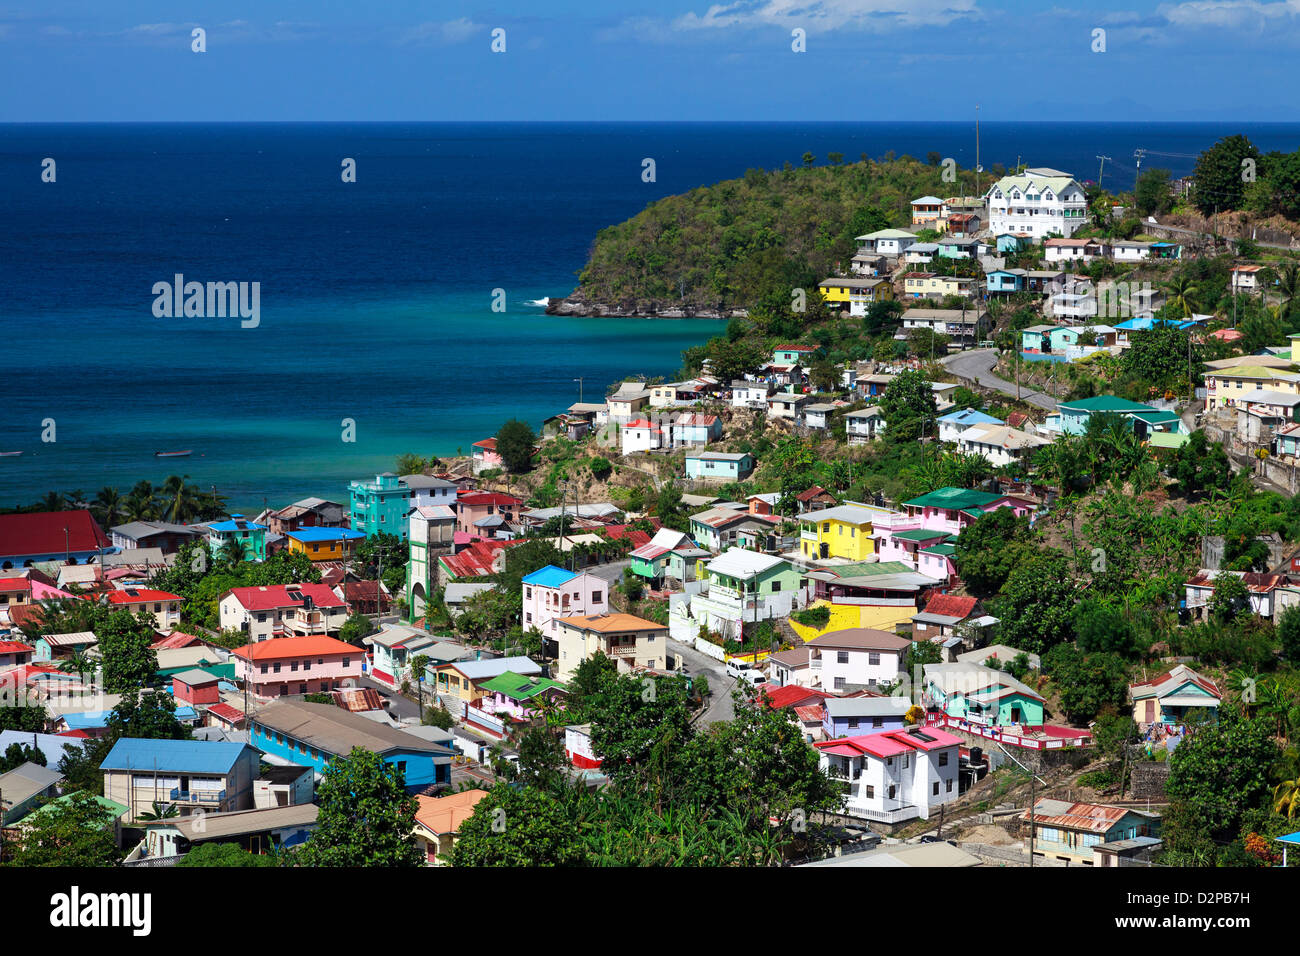 caribbean st lucia canaries village stockfotos caribbean st lucia canaries village bilder alamy. Black Bedroom Furniture Sets. Home Design Ideas